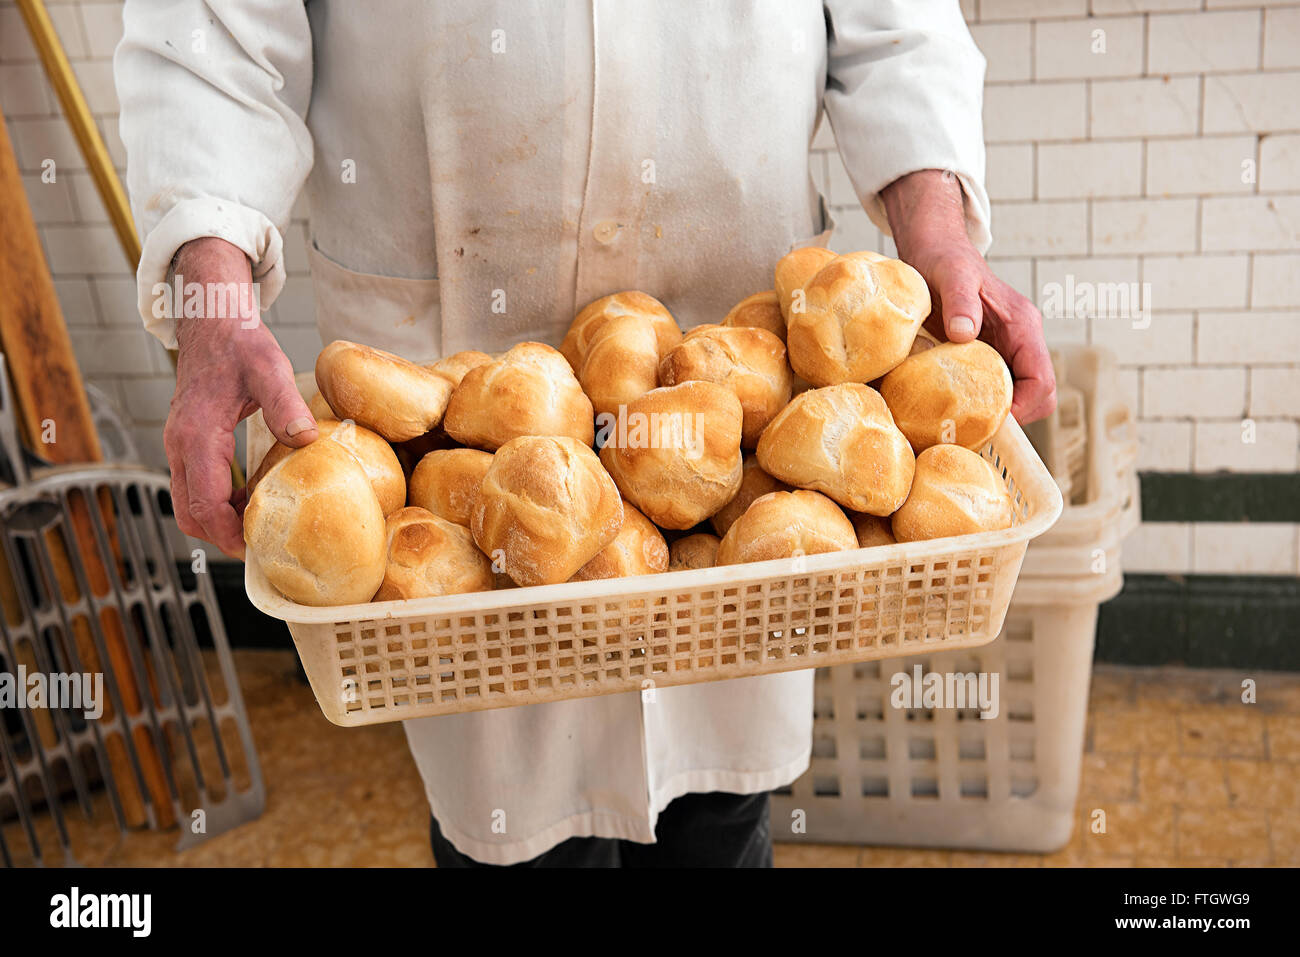 Baker holding a basket full of freshly baked crusty white bread rolls in his white coat at the bakery - Stock Image